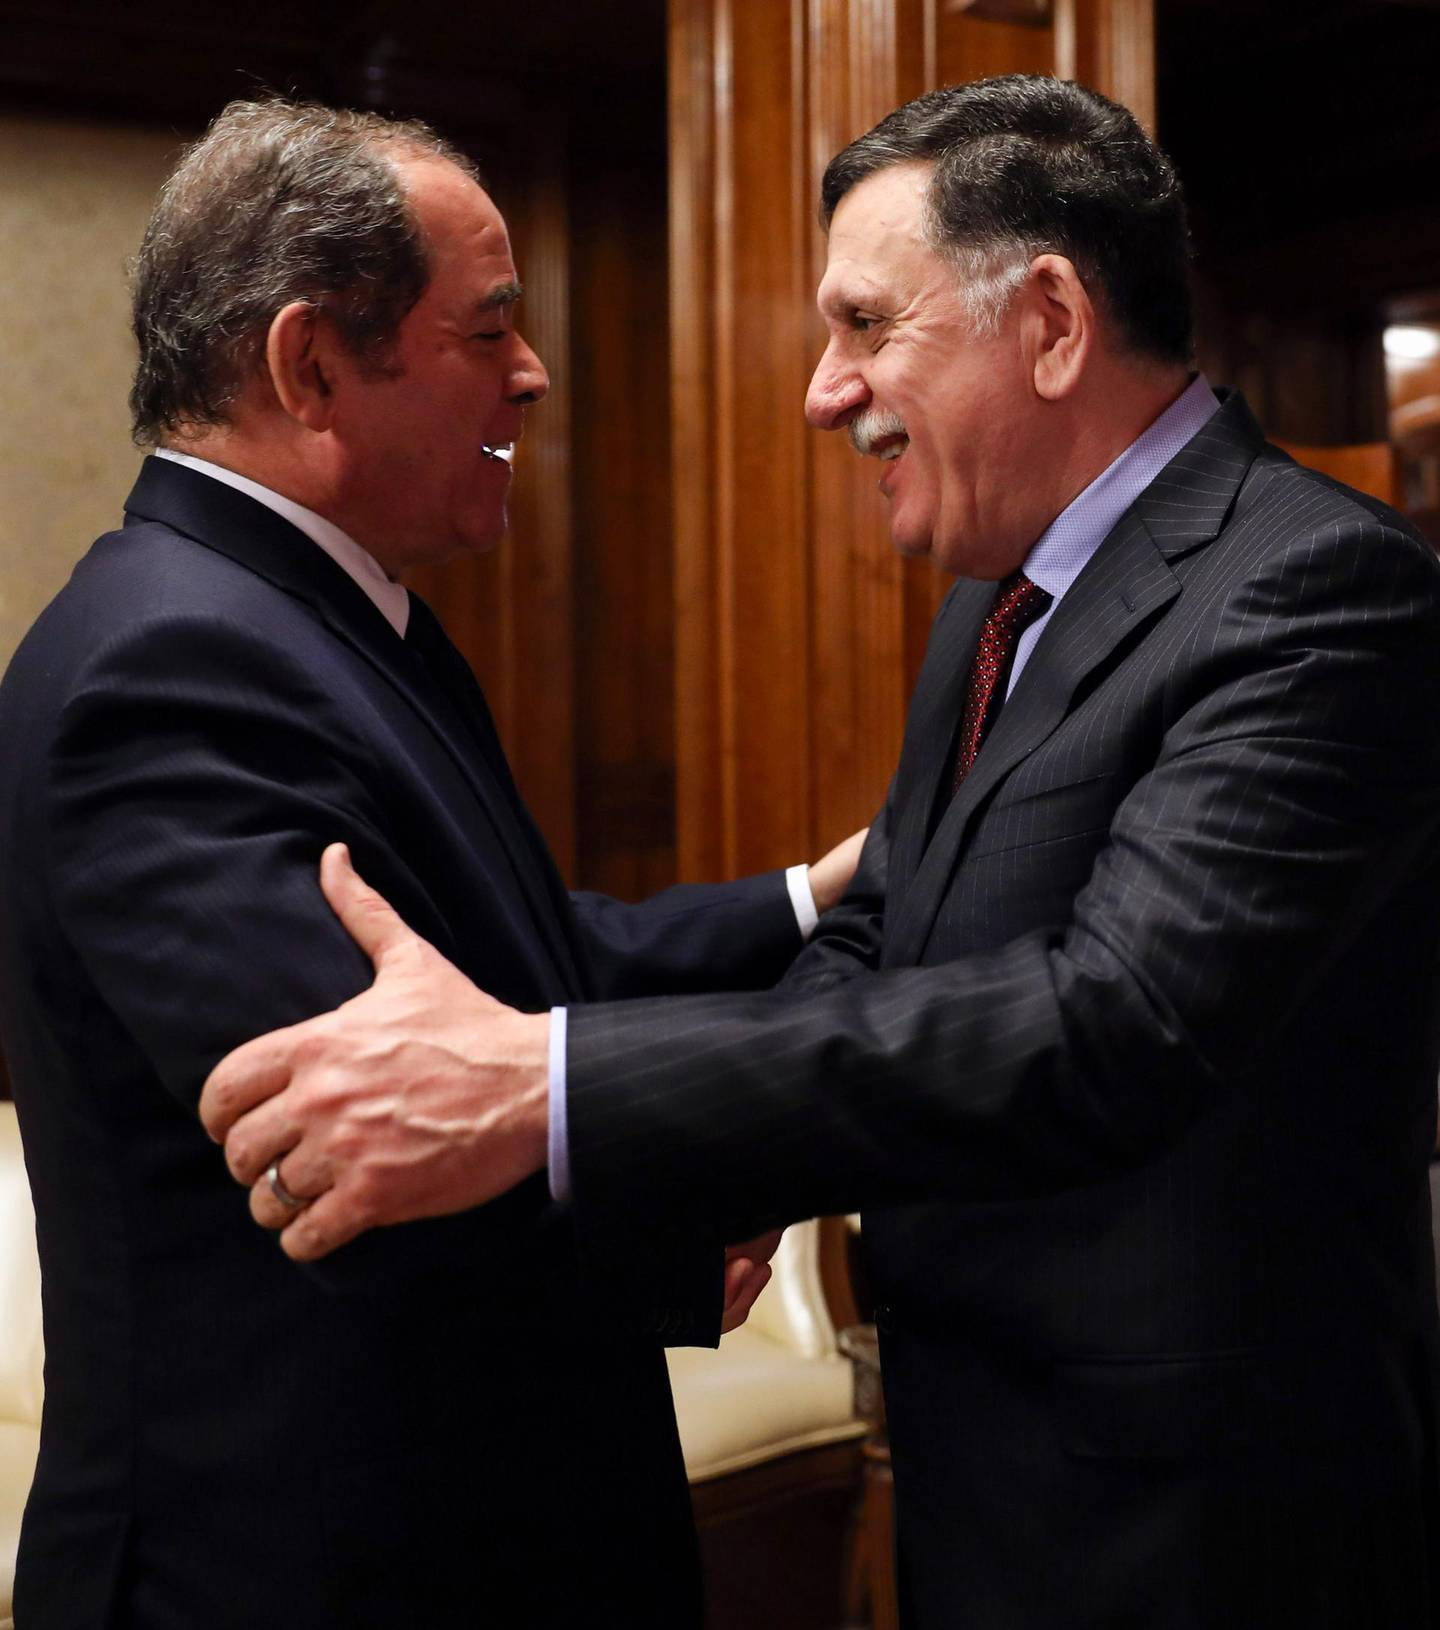 Prime Minister of Libya's UN-recognised Government of National Accord (GNA) Fayez al-Sarraj (R) greets Algeria's Foreign Minister Sabri Boukadoum in the Libyan capital Tripoli on February 18, 2020. / AFP / -